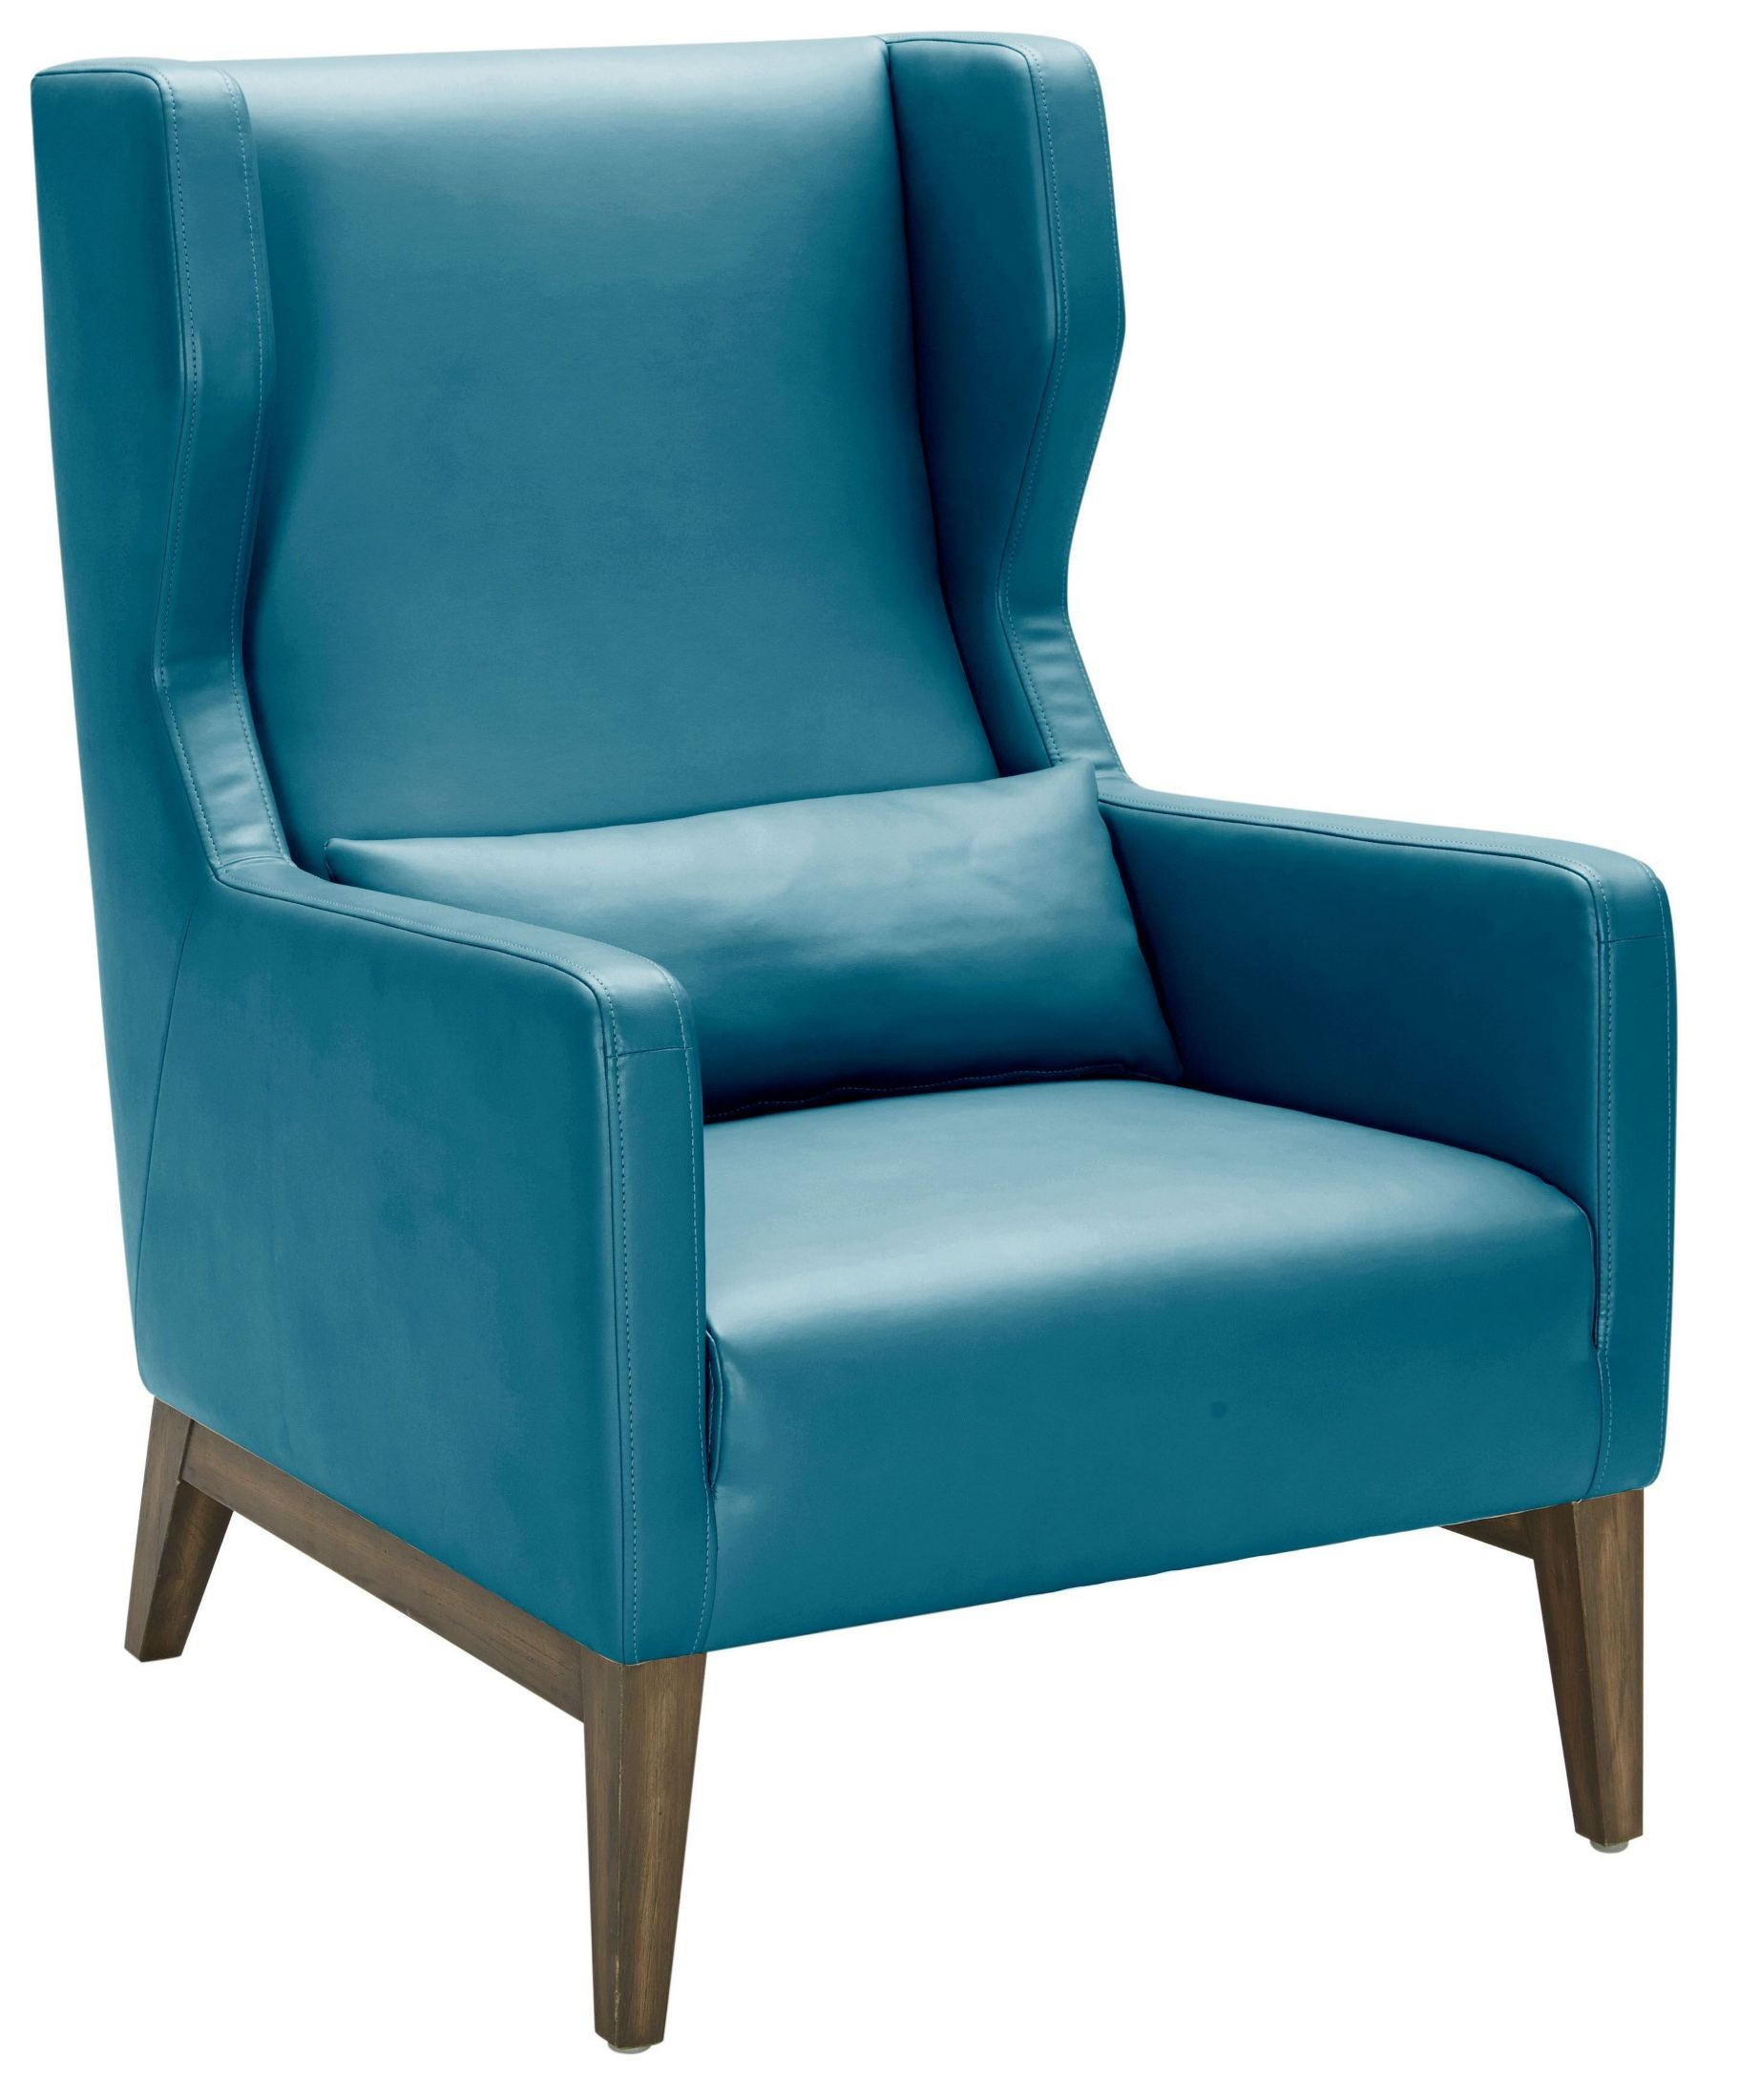 Messina Turquoise Leather Armchair From Sunpan